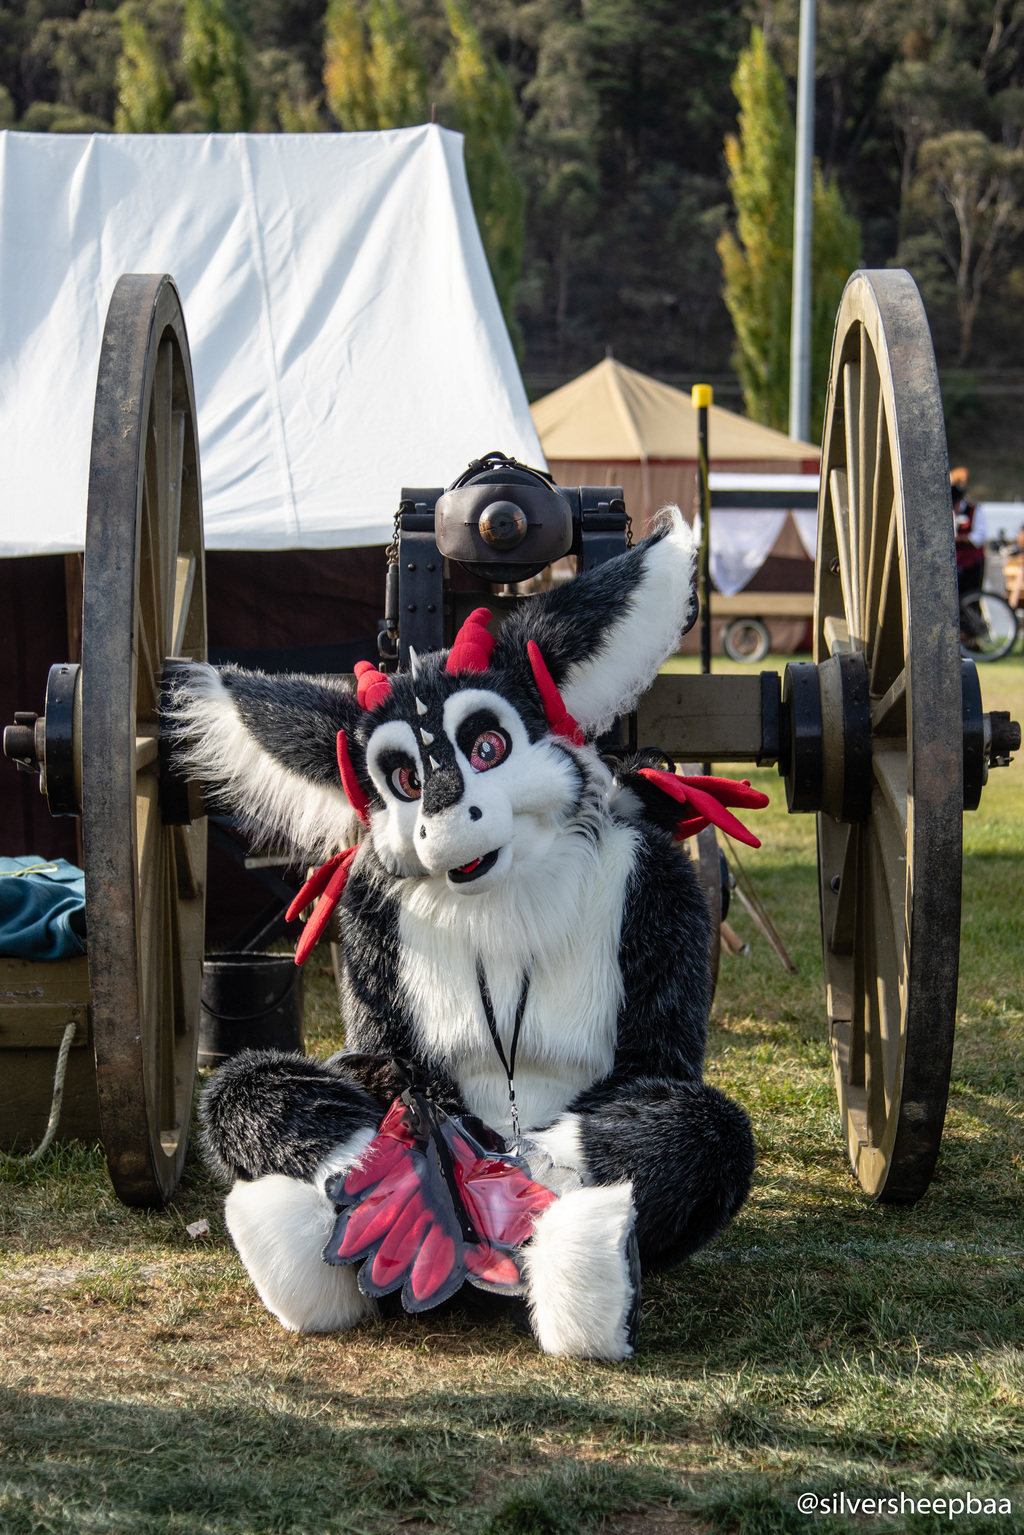 Ironfest 2018: The Cannon